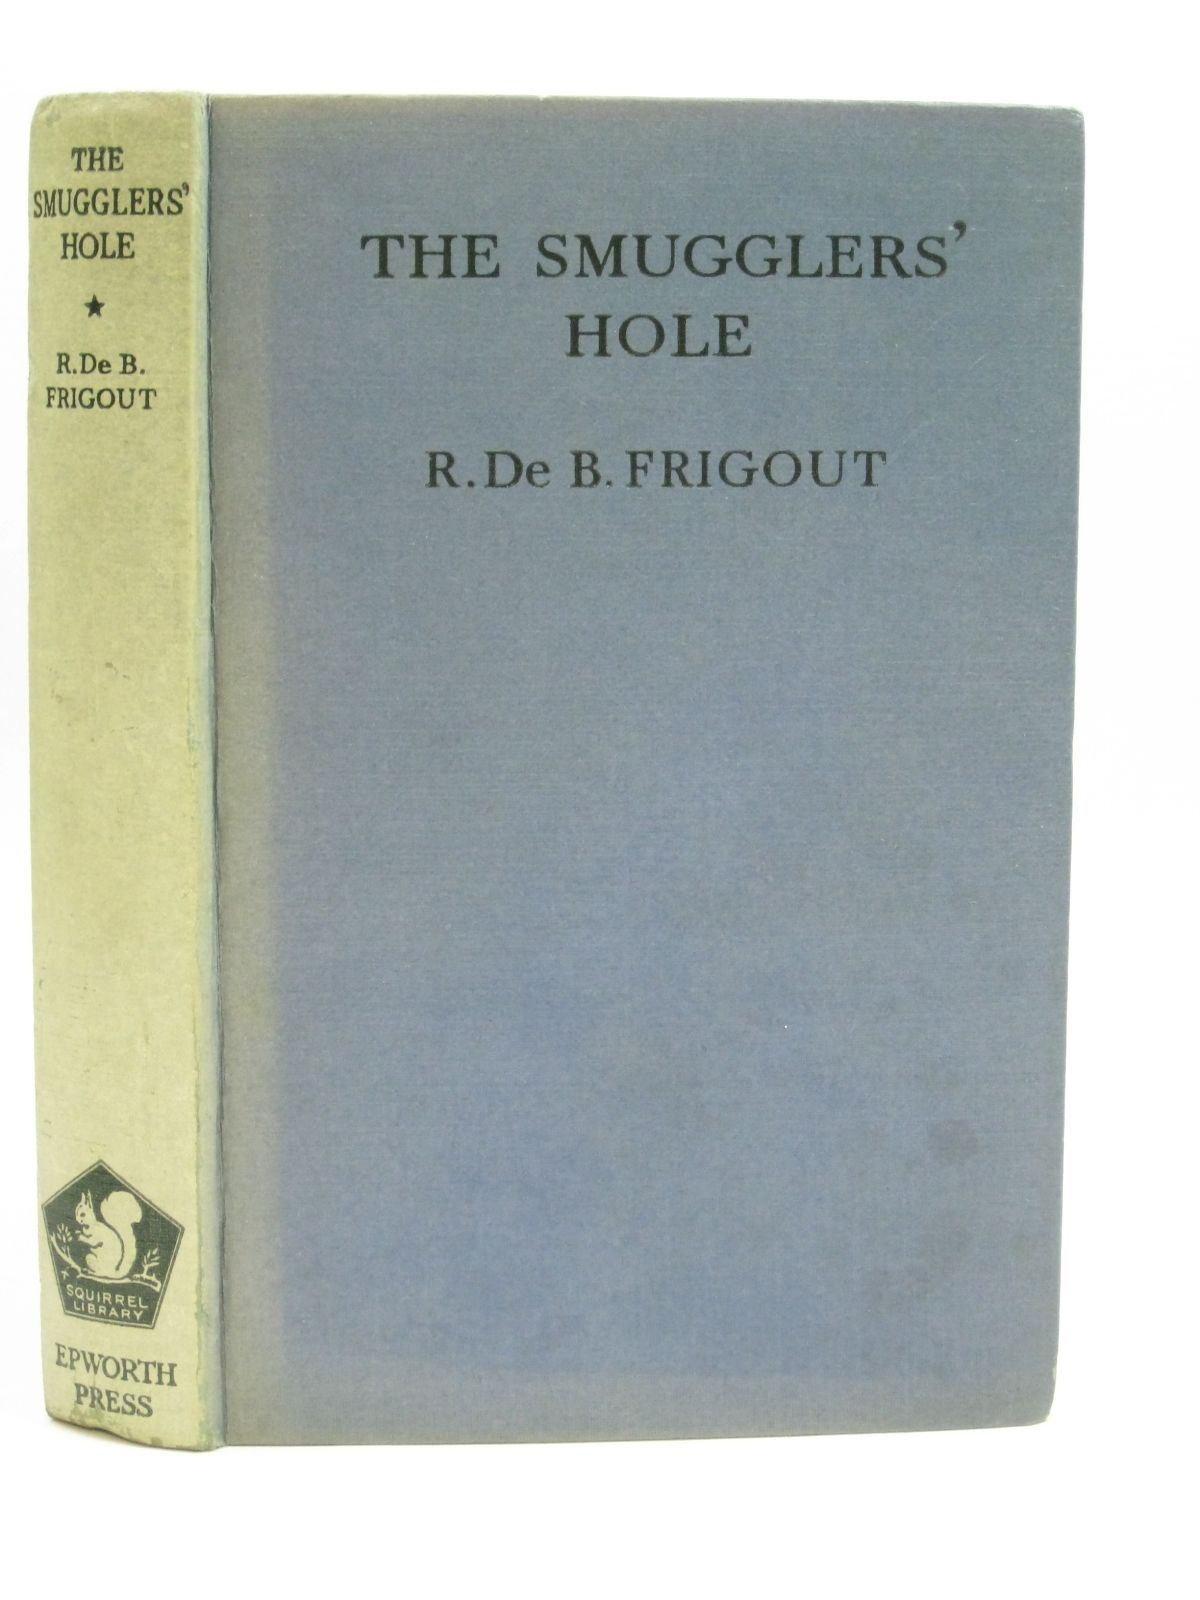 Photo of THE SMUGGLERS' HOLE written by Frigout, R published by The Epworth Press (STOCK CODE: 1405918)  for sale by Stella & Rose's Books